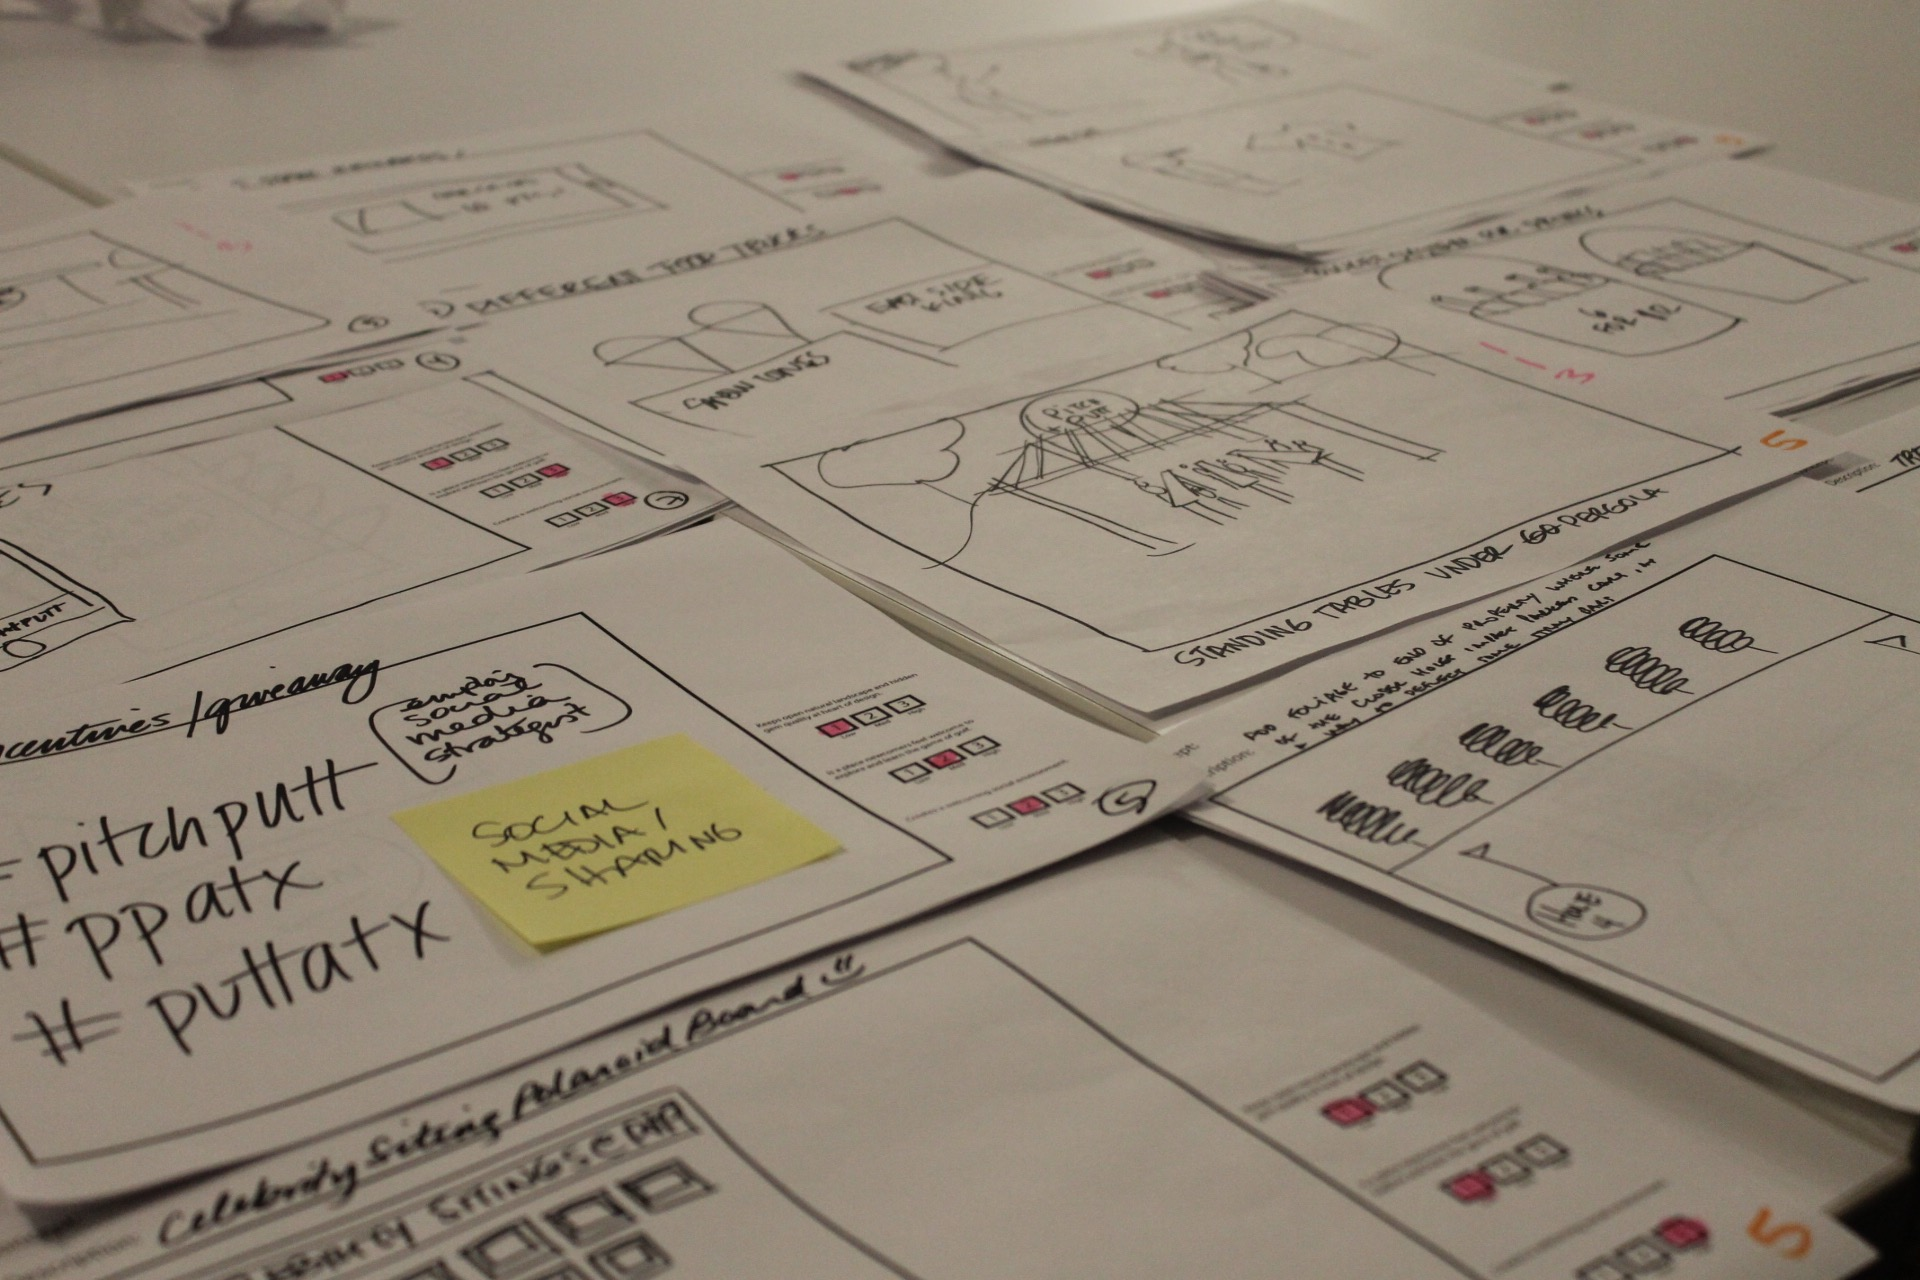 We sketched and ideated over 100 concepts then came together to rate them against our Design Criteria.